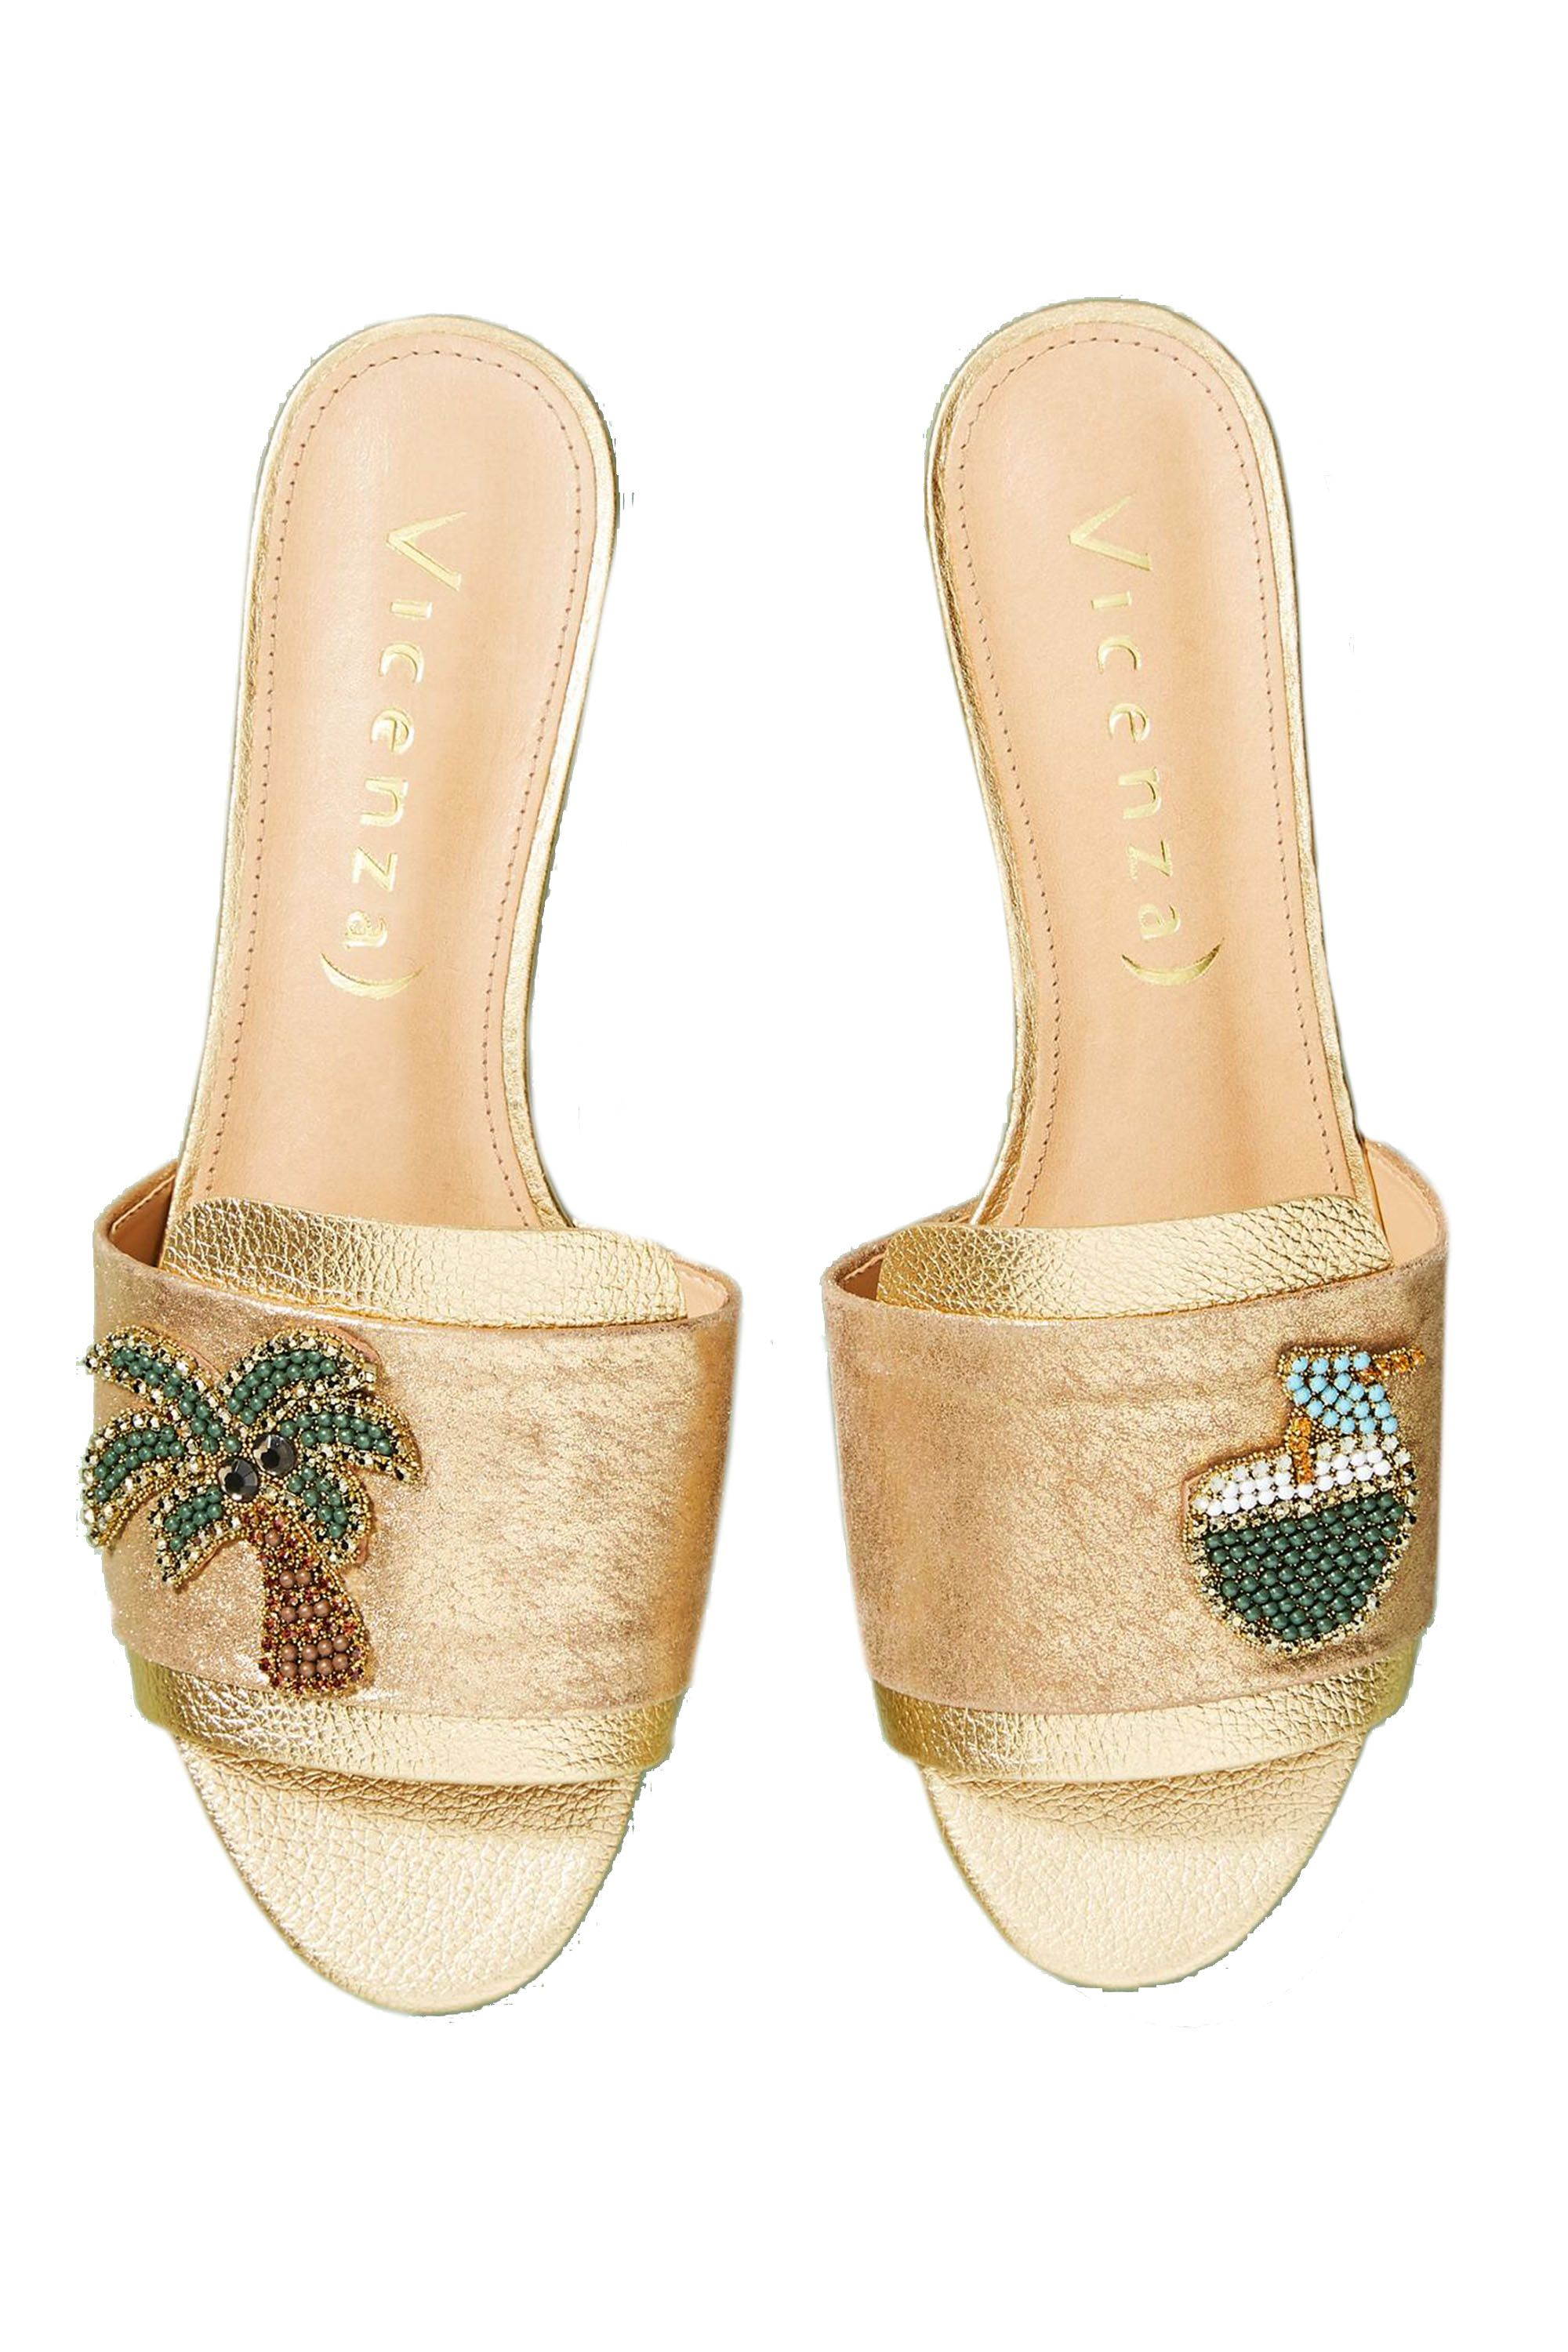 d97a22d7223b Best Summer Sandals 2018 - Trendy Sandals and Shoes for Summer